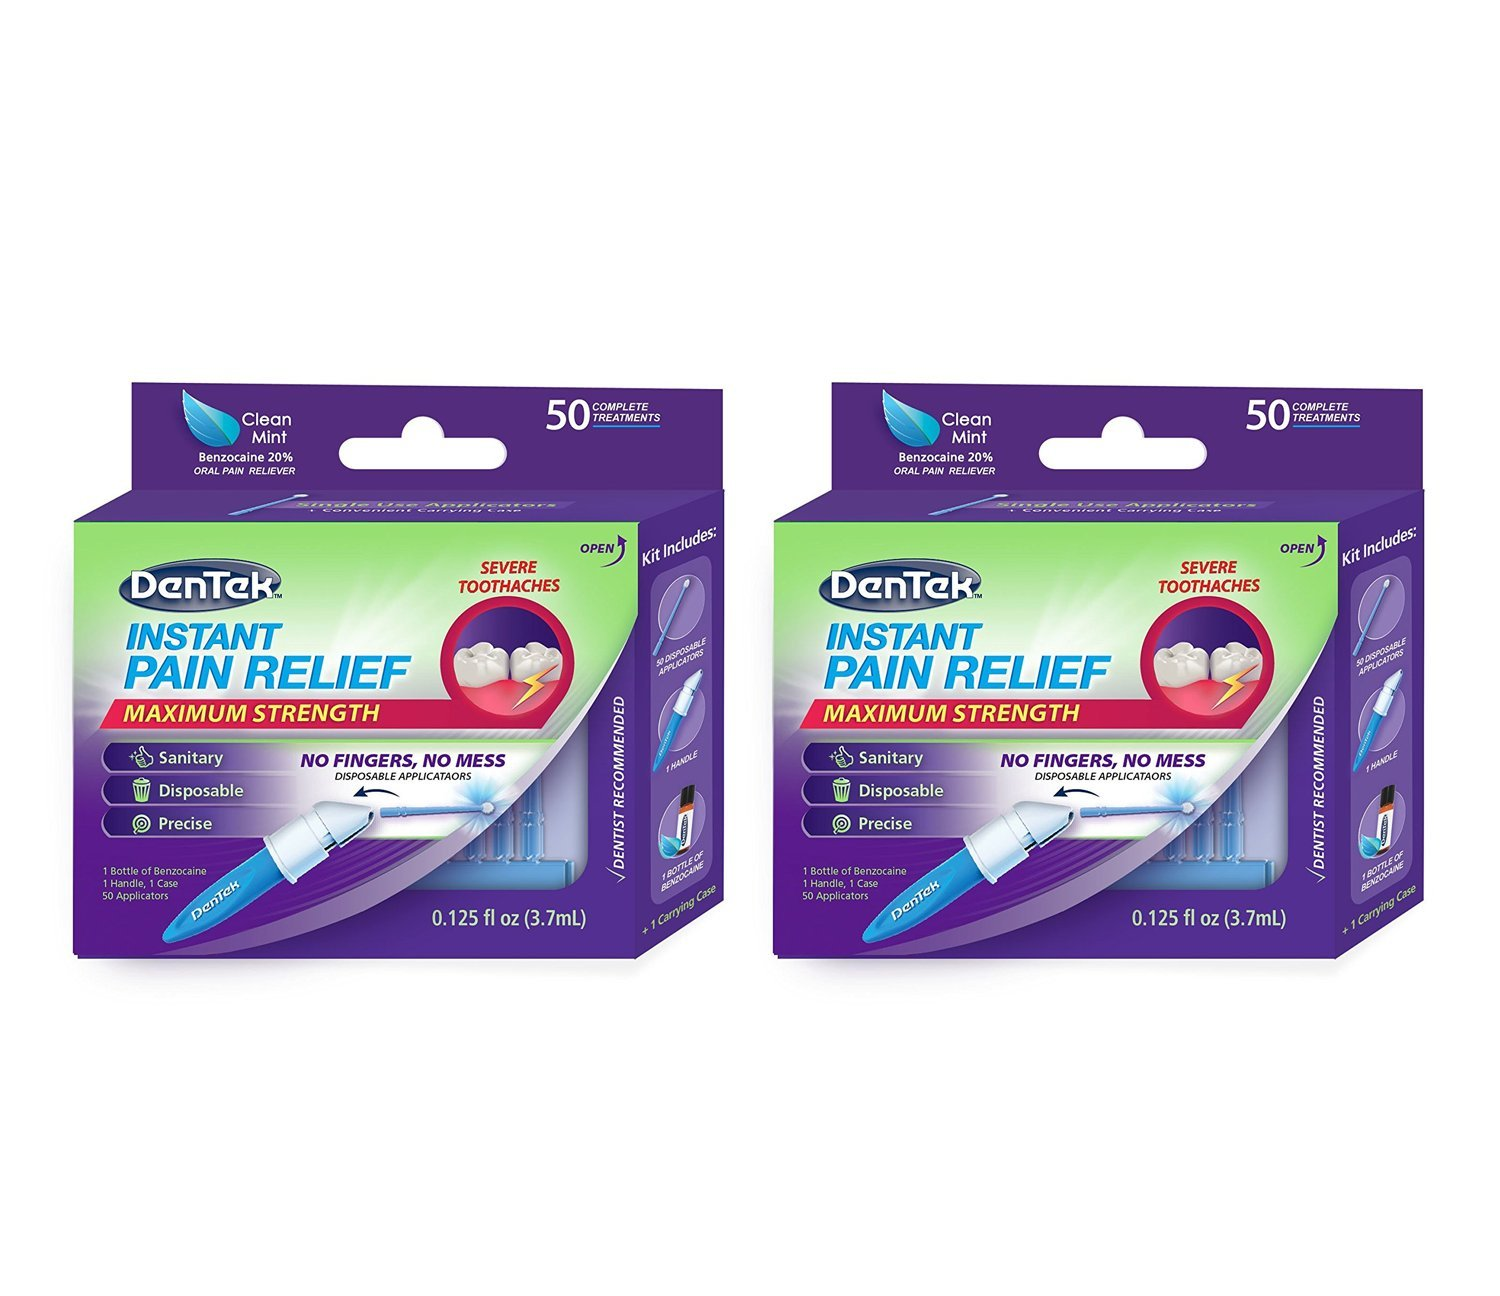 DenTek Instant Oral Pain Relief Maximum Strength Kit for Toothaches | 50-Count per pack | 2-Pack : Beauty